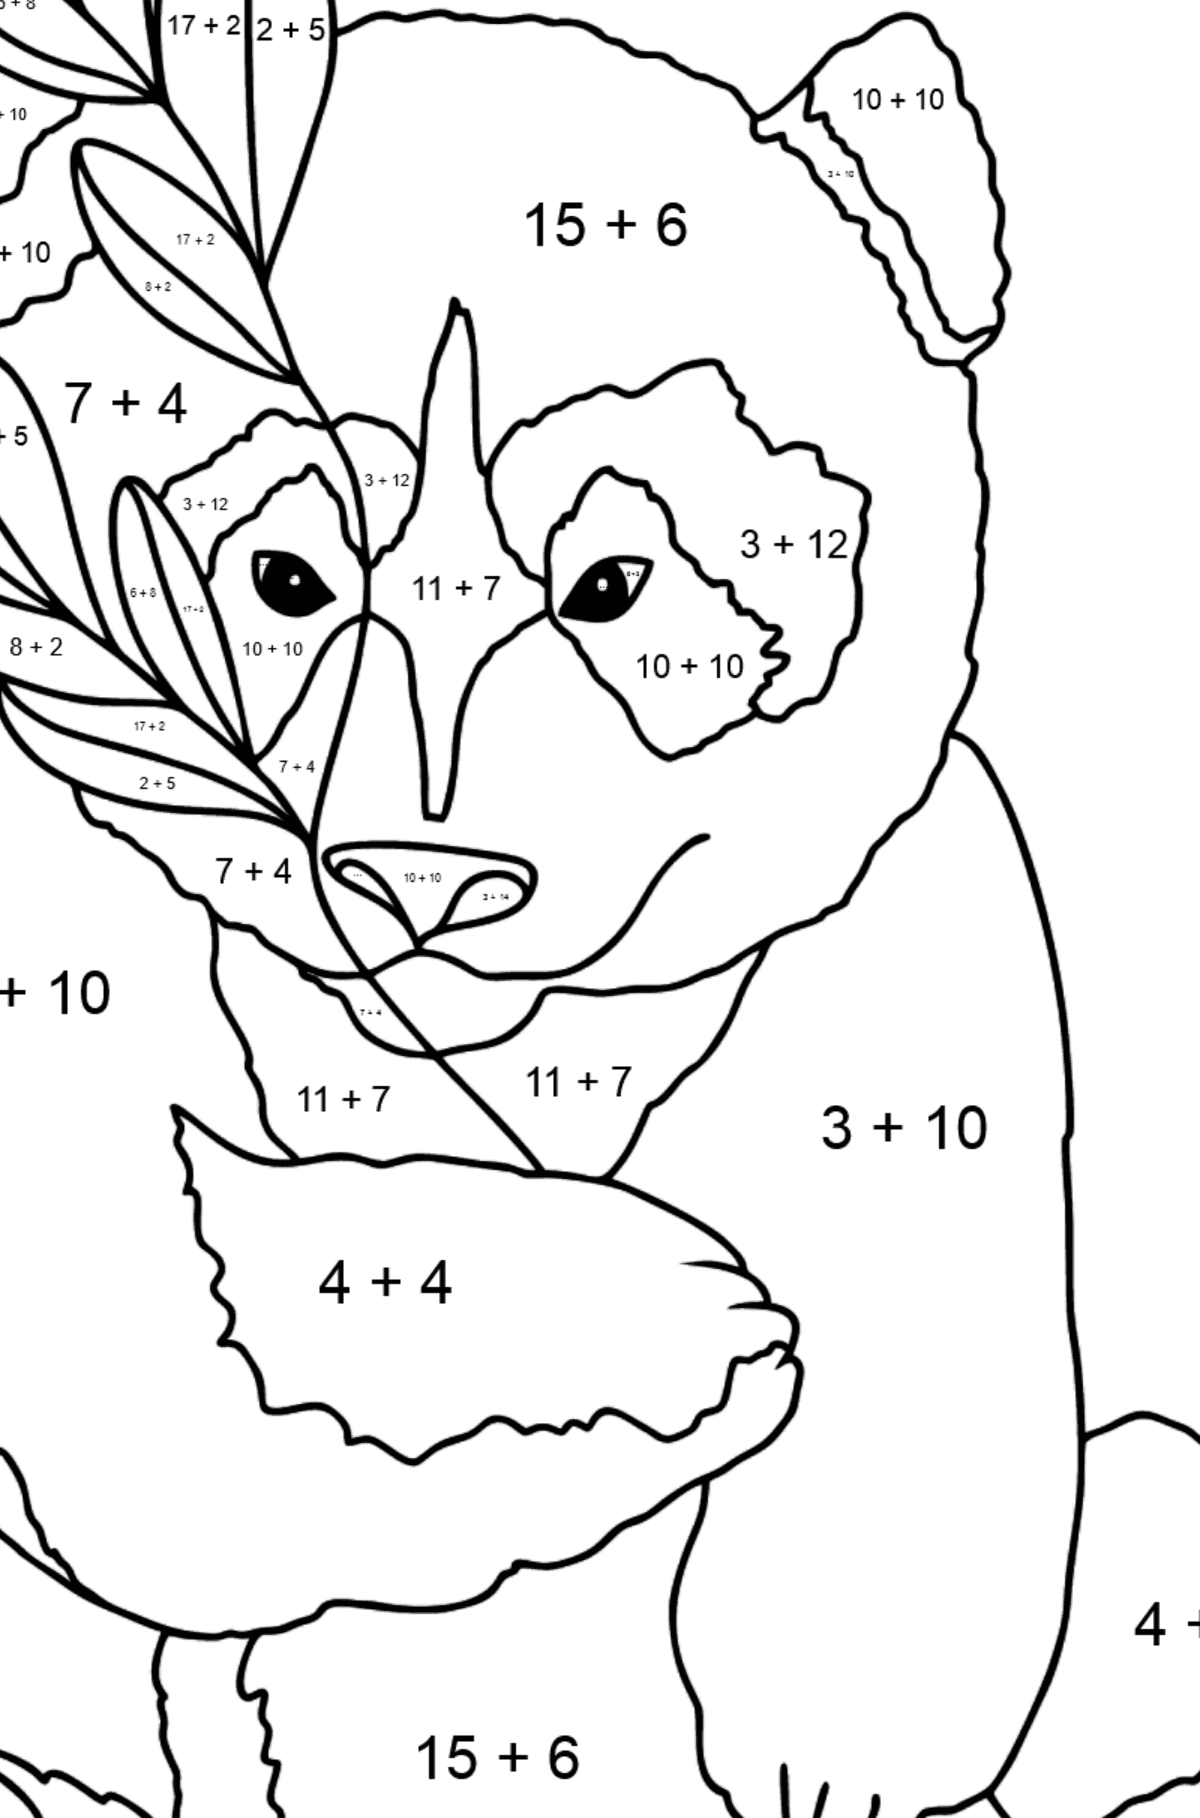 Coloring Page - A Panda Loves Bamboo Leaves - Math Coloring - Addition for Kids